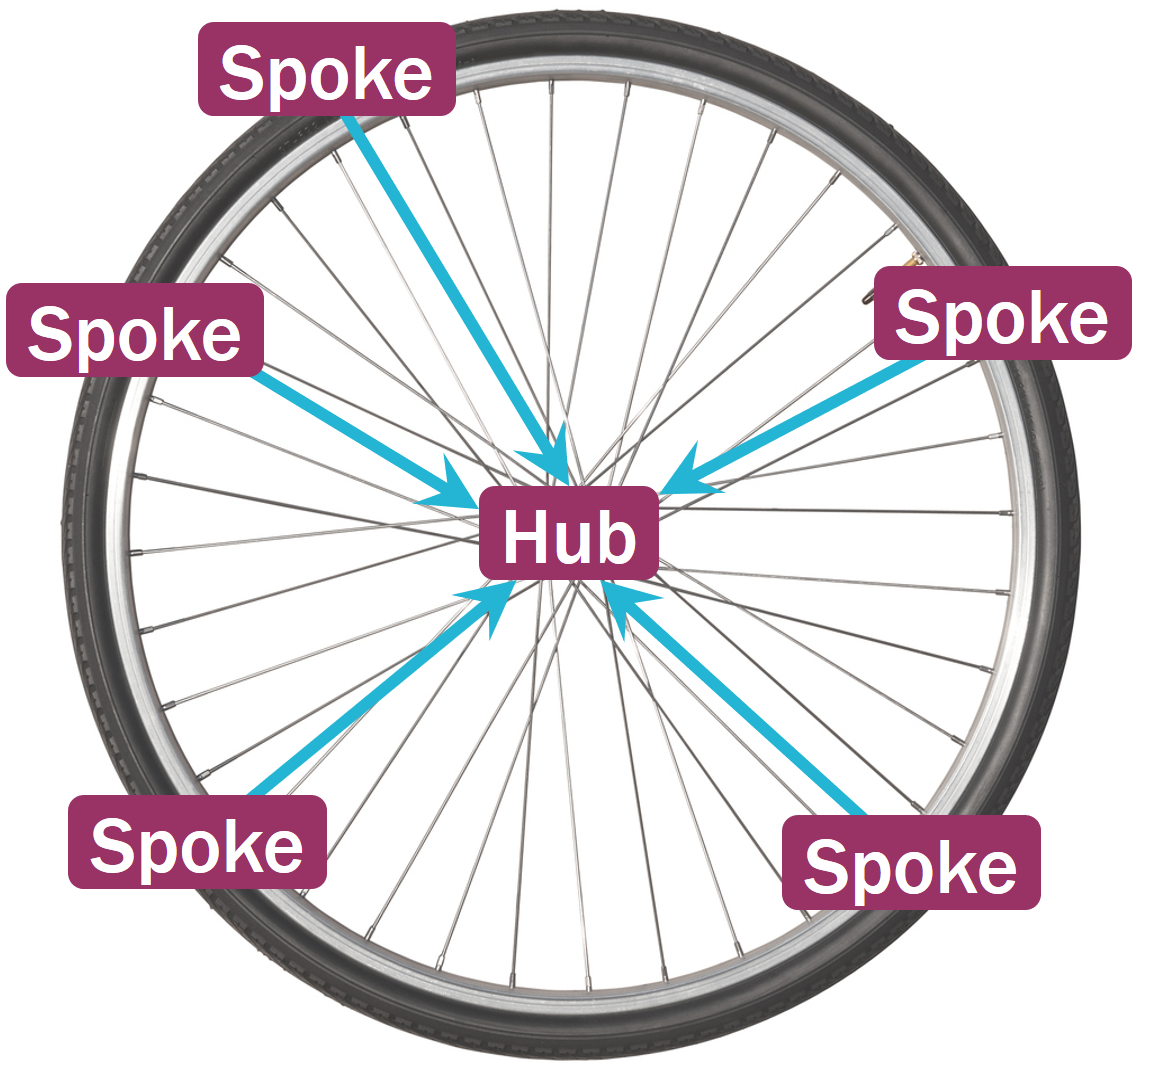 Hub and spoke content and seo strategy using a bicycle wheel